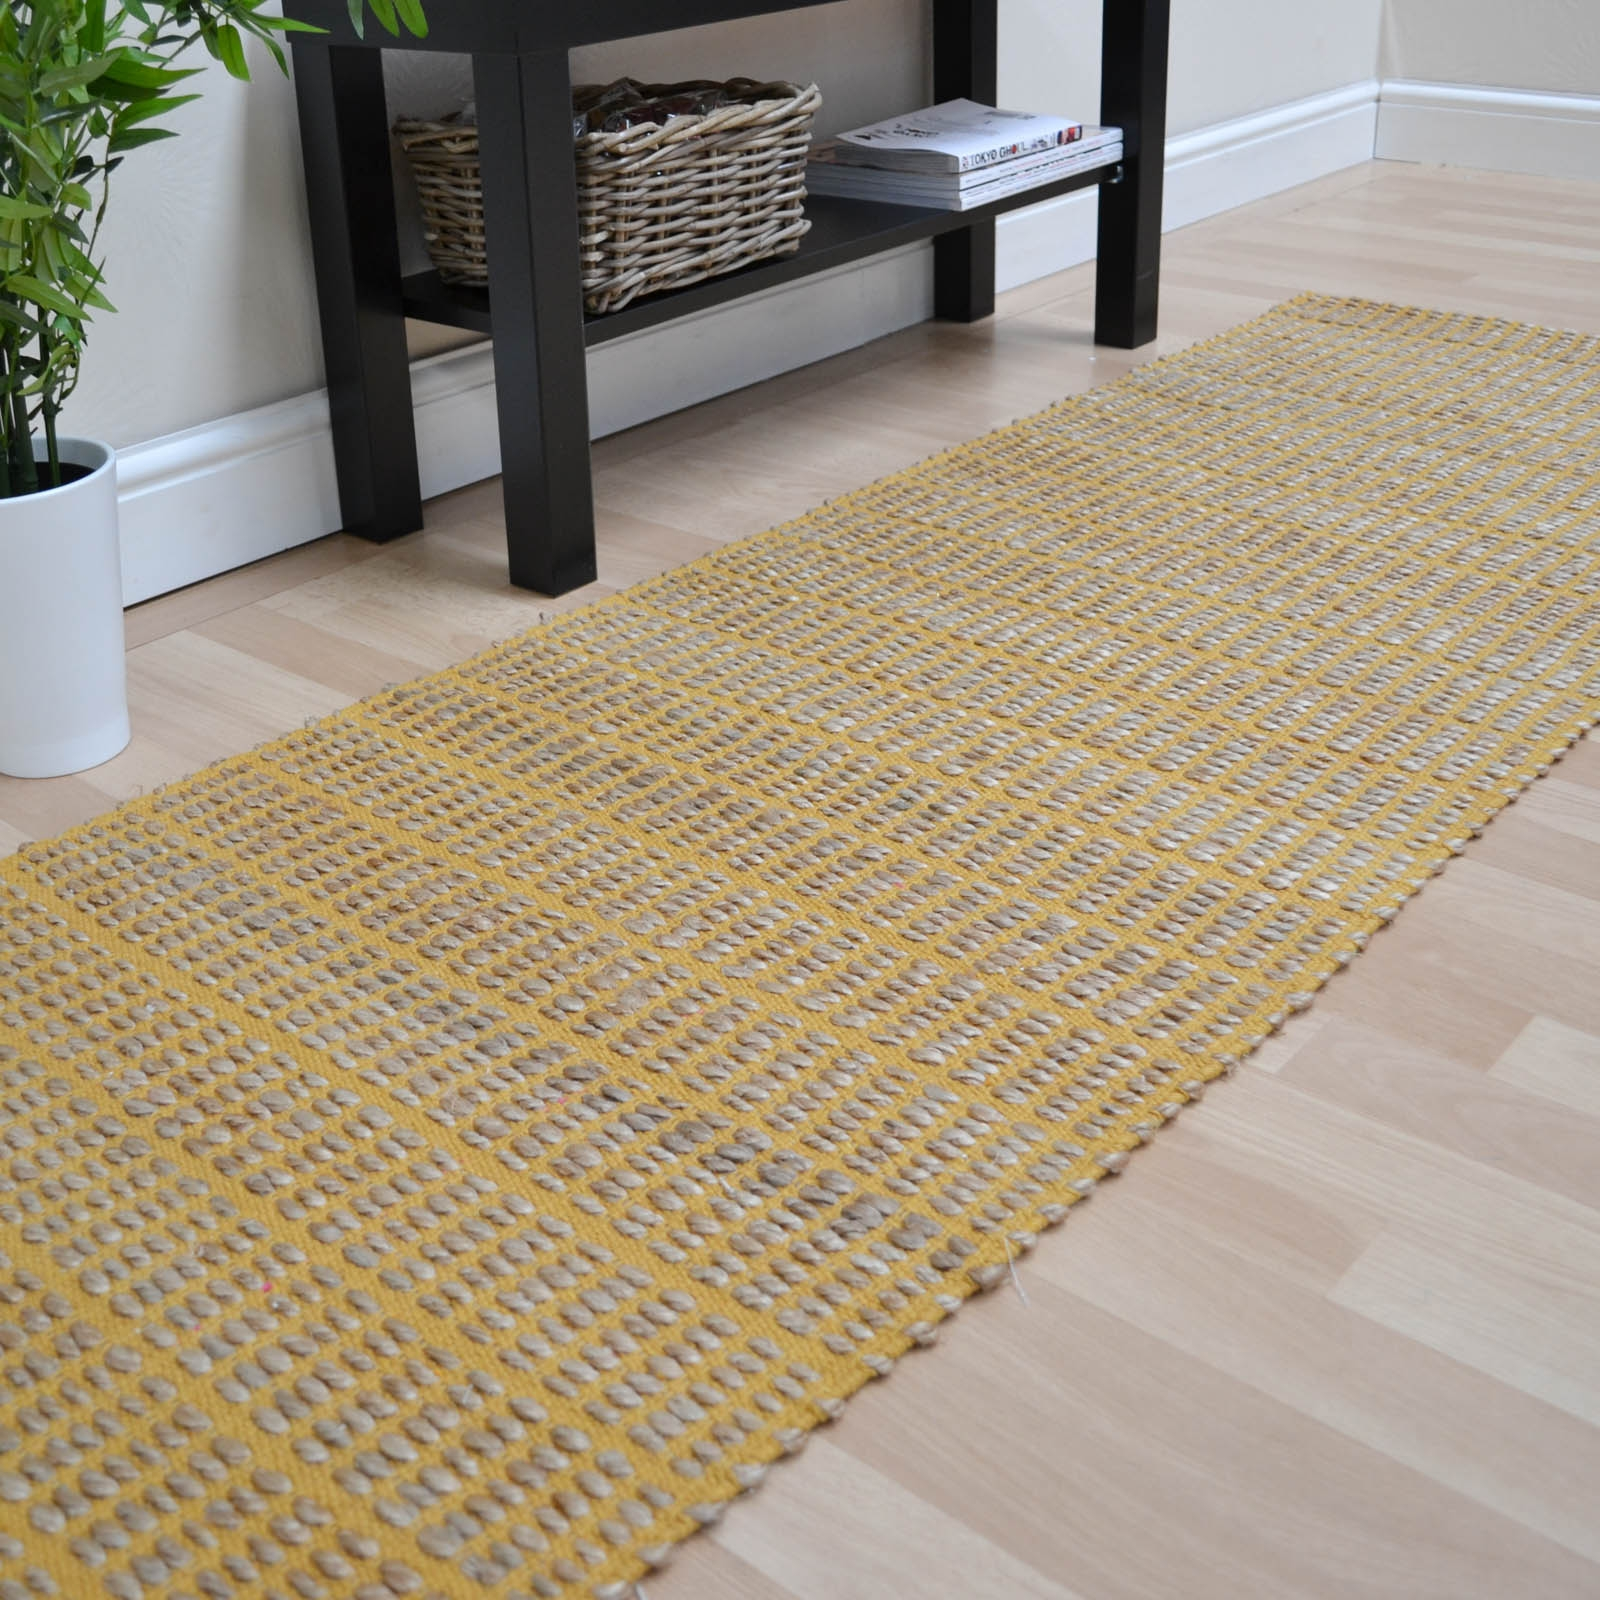 Hallway Runner Rugs Uk Pictures Home Furniture Ideas With Hall Runner (View 10 of 15)